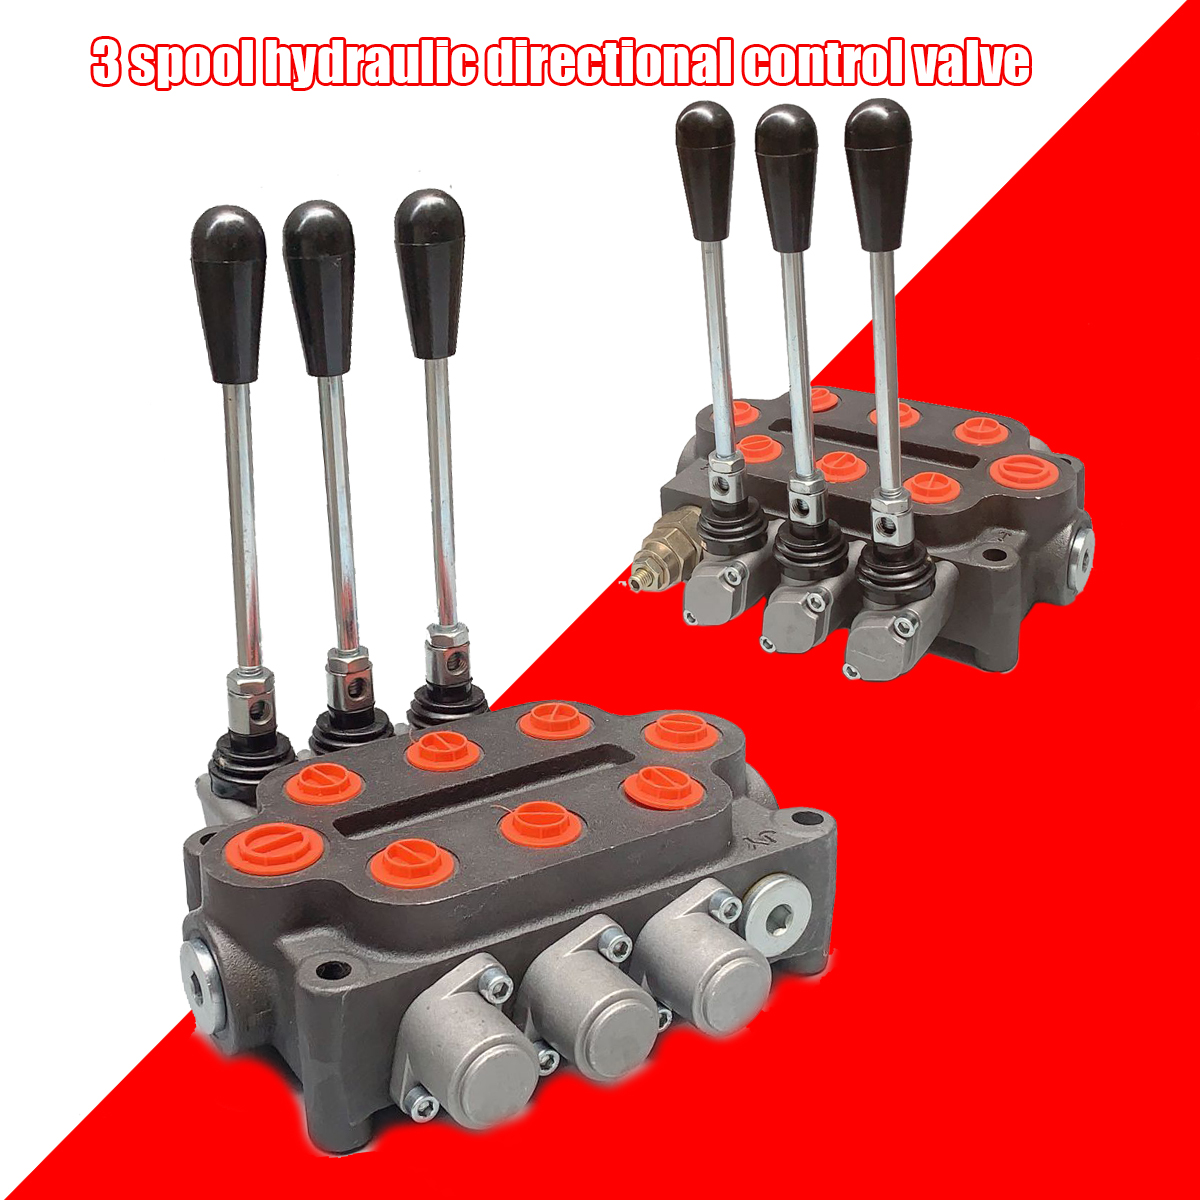 Details about Hydraulic Directional Control Valve 3 Spool Tractor Loader  25GPM Ports Acting